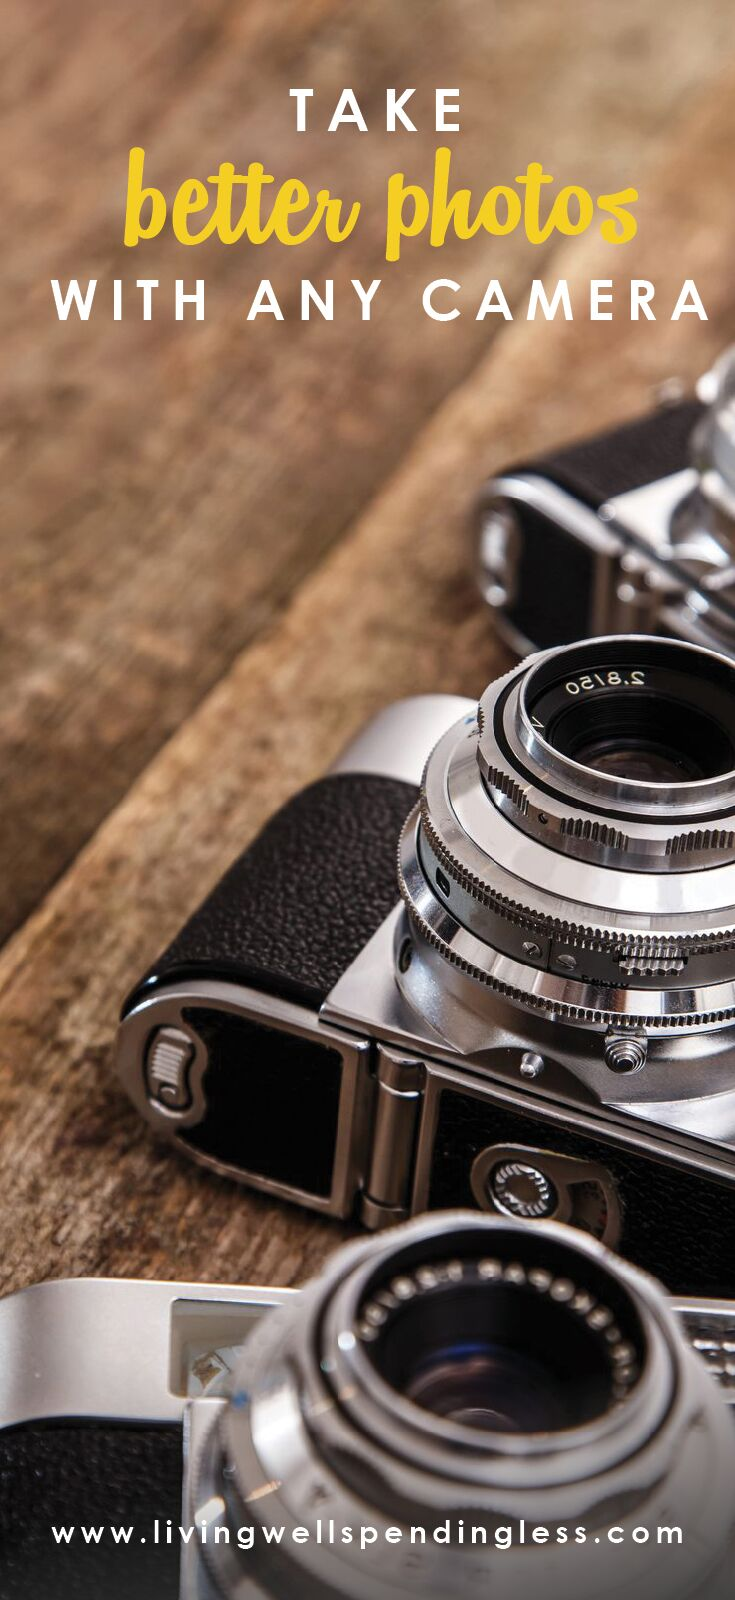 5 Tips for Taking Better Photos With Any Camera   Photography Tips   Photography Hacks   Photography 101   Using Filter Tips for Great Photos   How To Take Good Photos